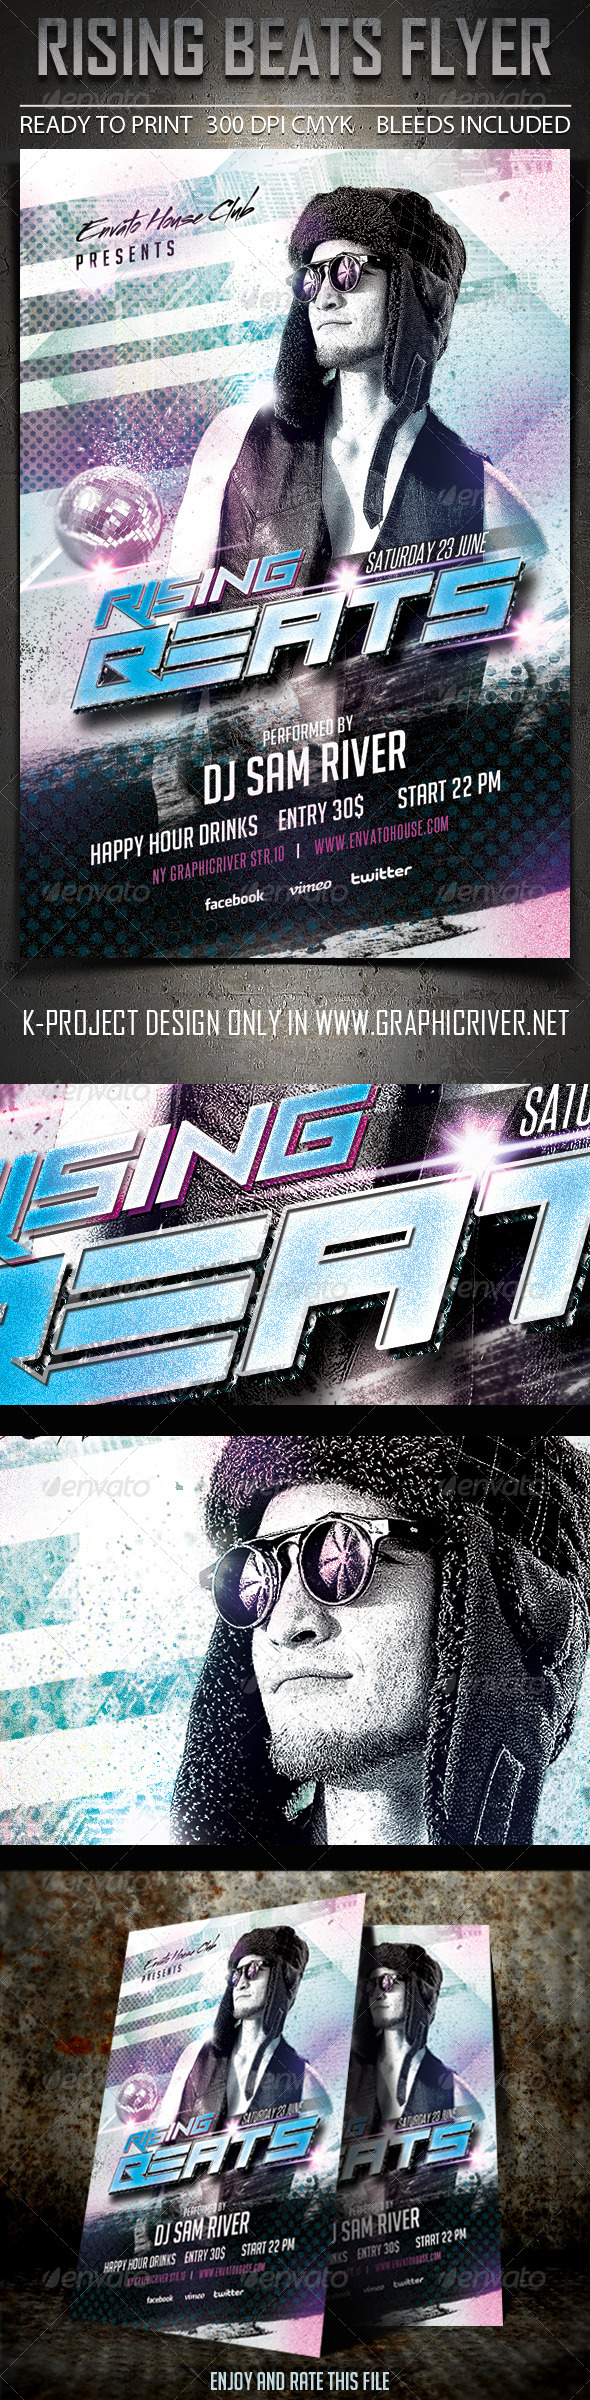 GraphicRiver Rising Beats Flyer 6914568